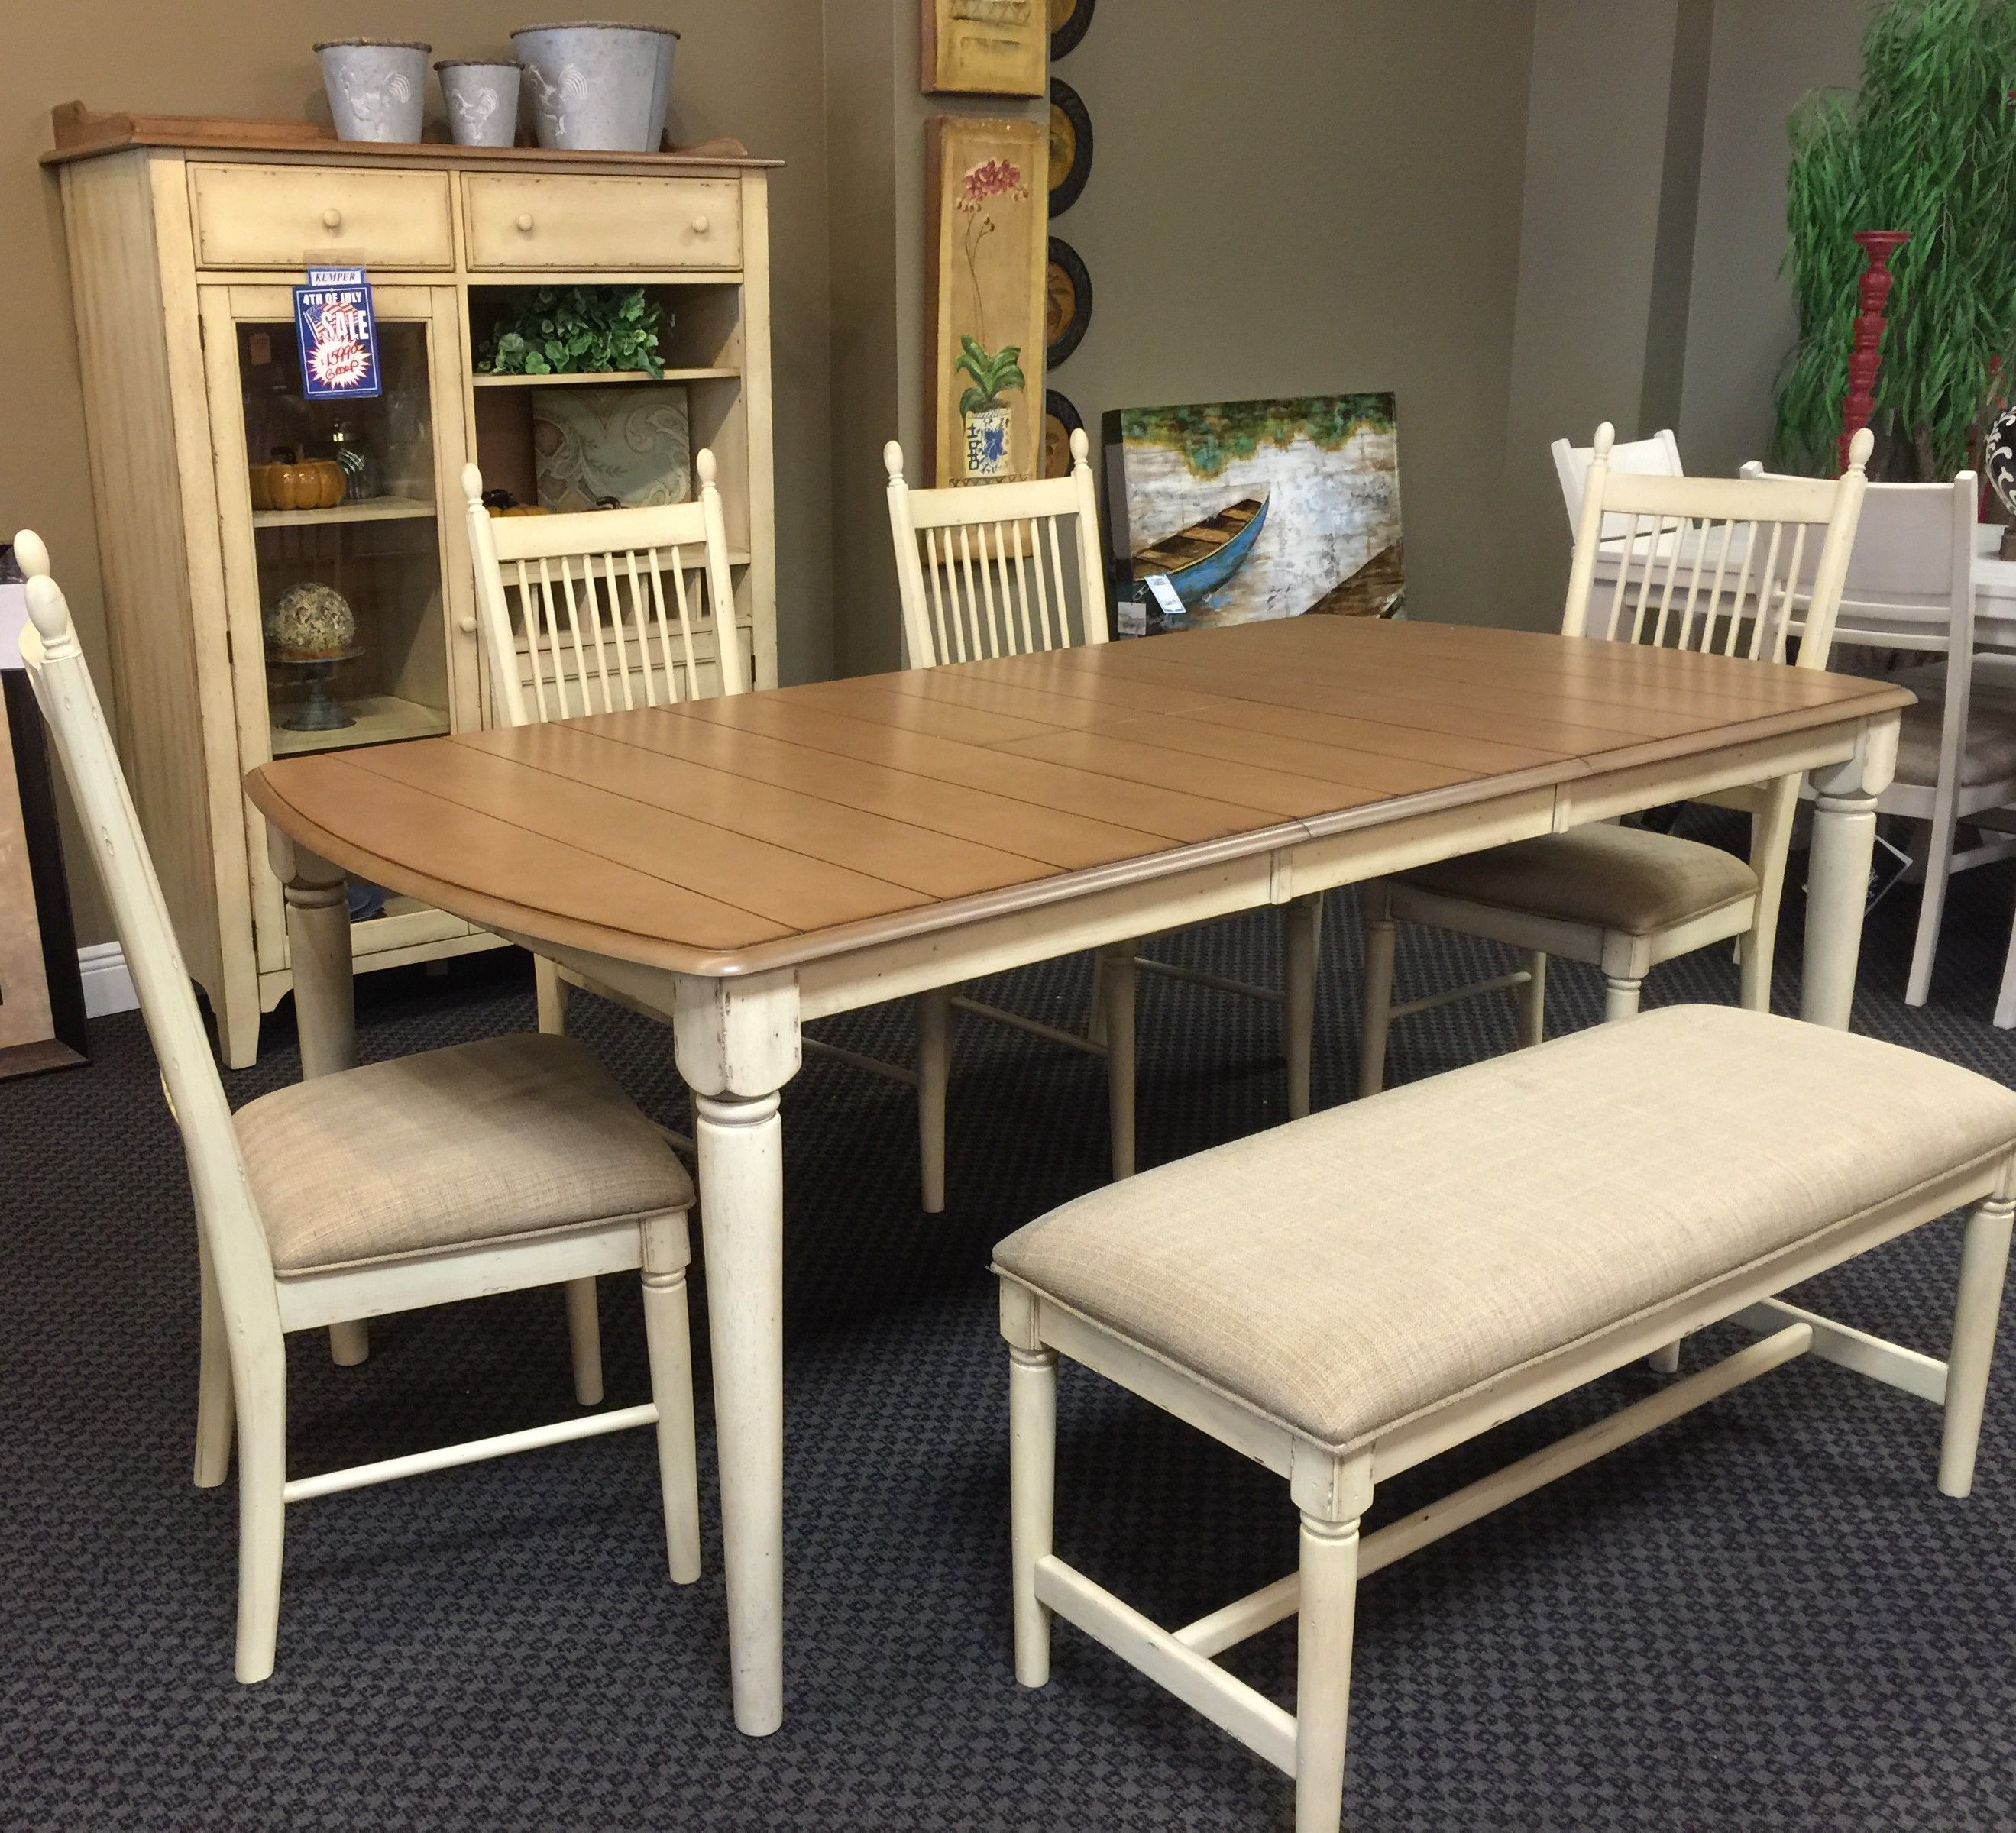 Fine Liberty 157 Dining Table Chairs Bench Hutch All For Caraccident5 Cool Chair Designs And Ideas Caraccident5Info